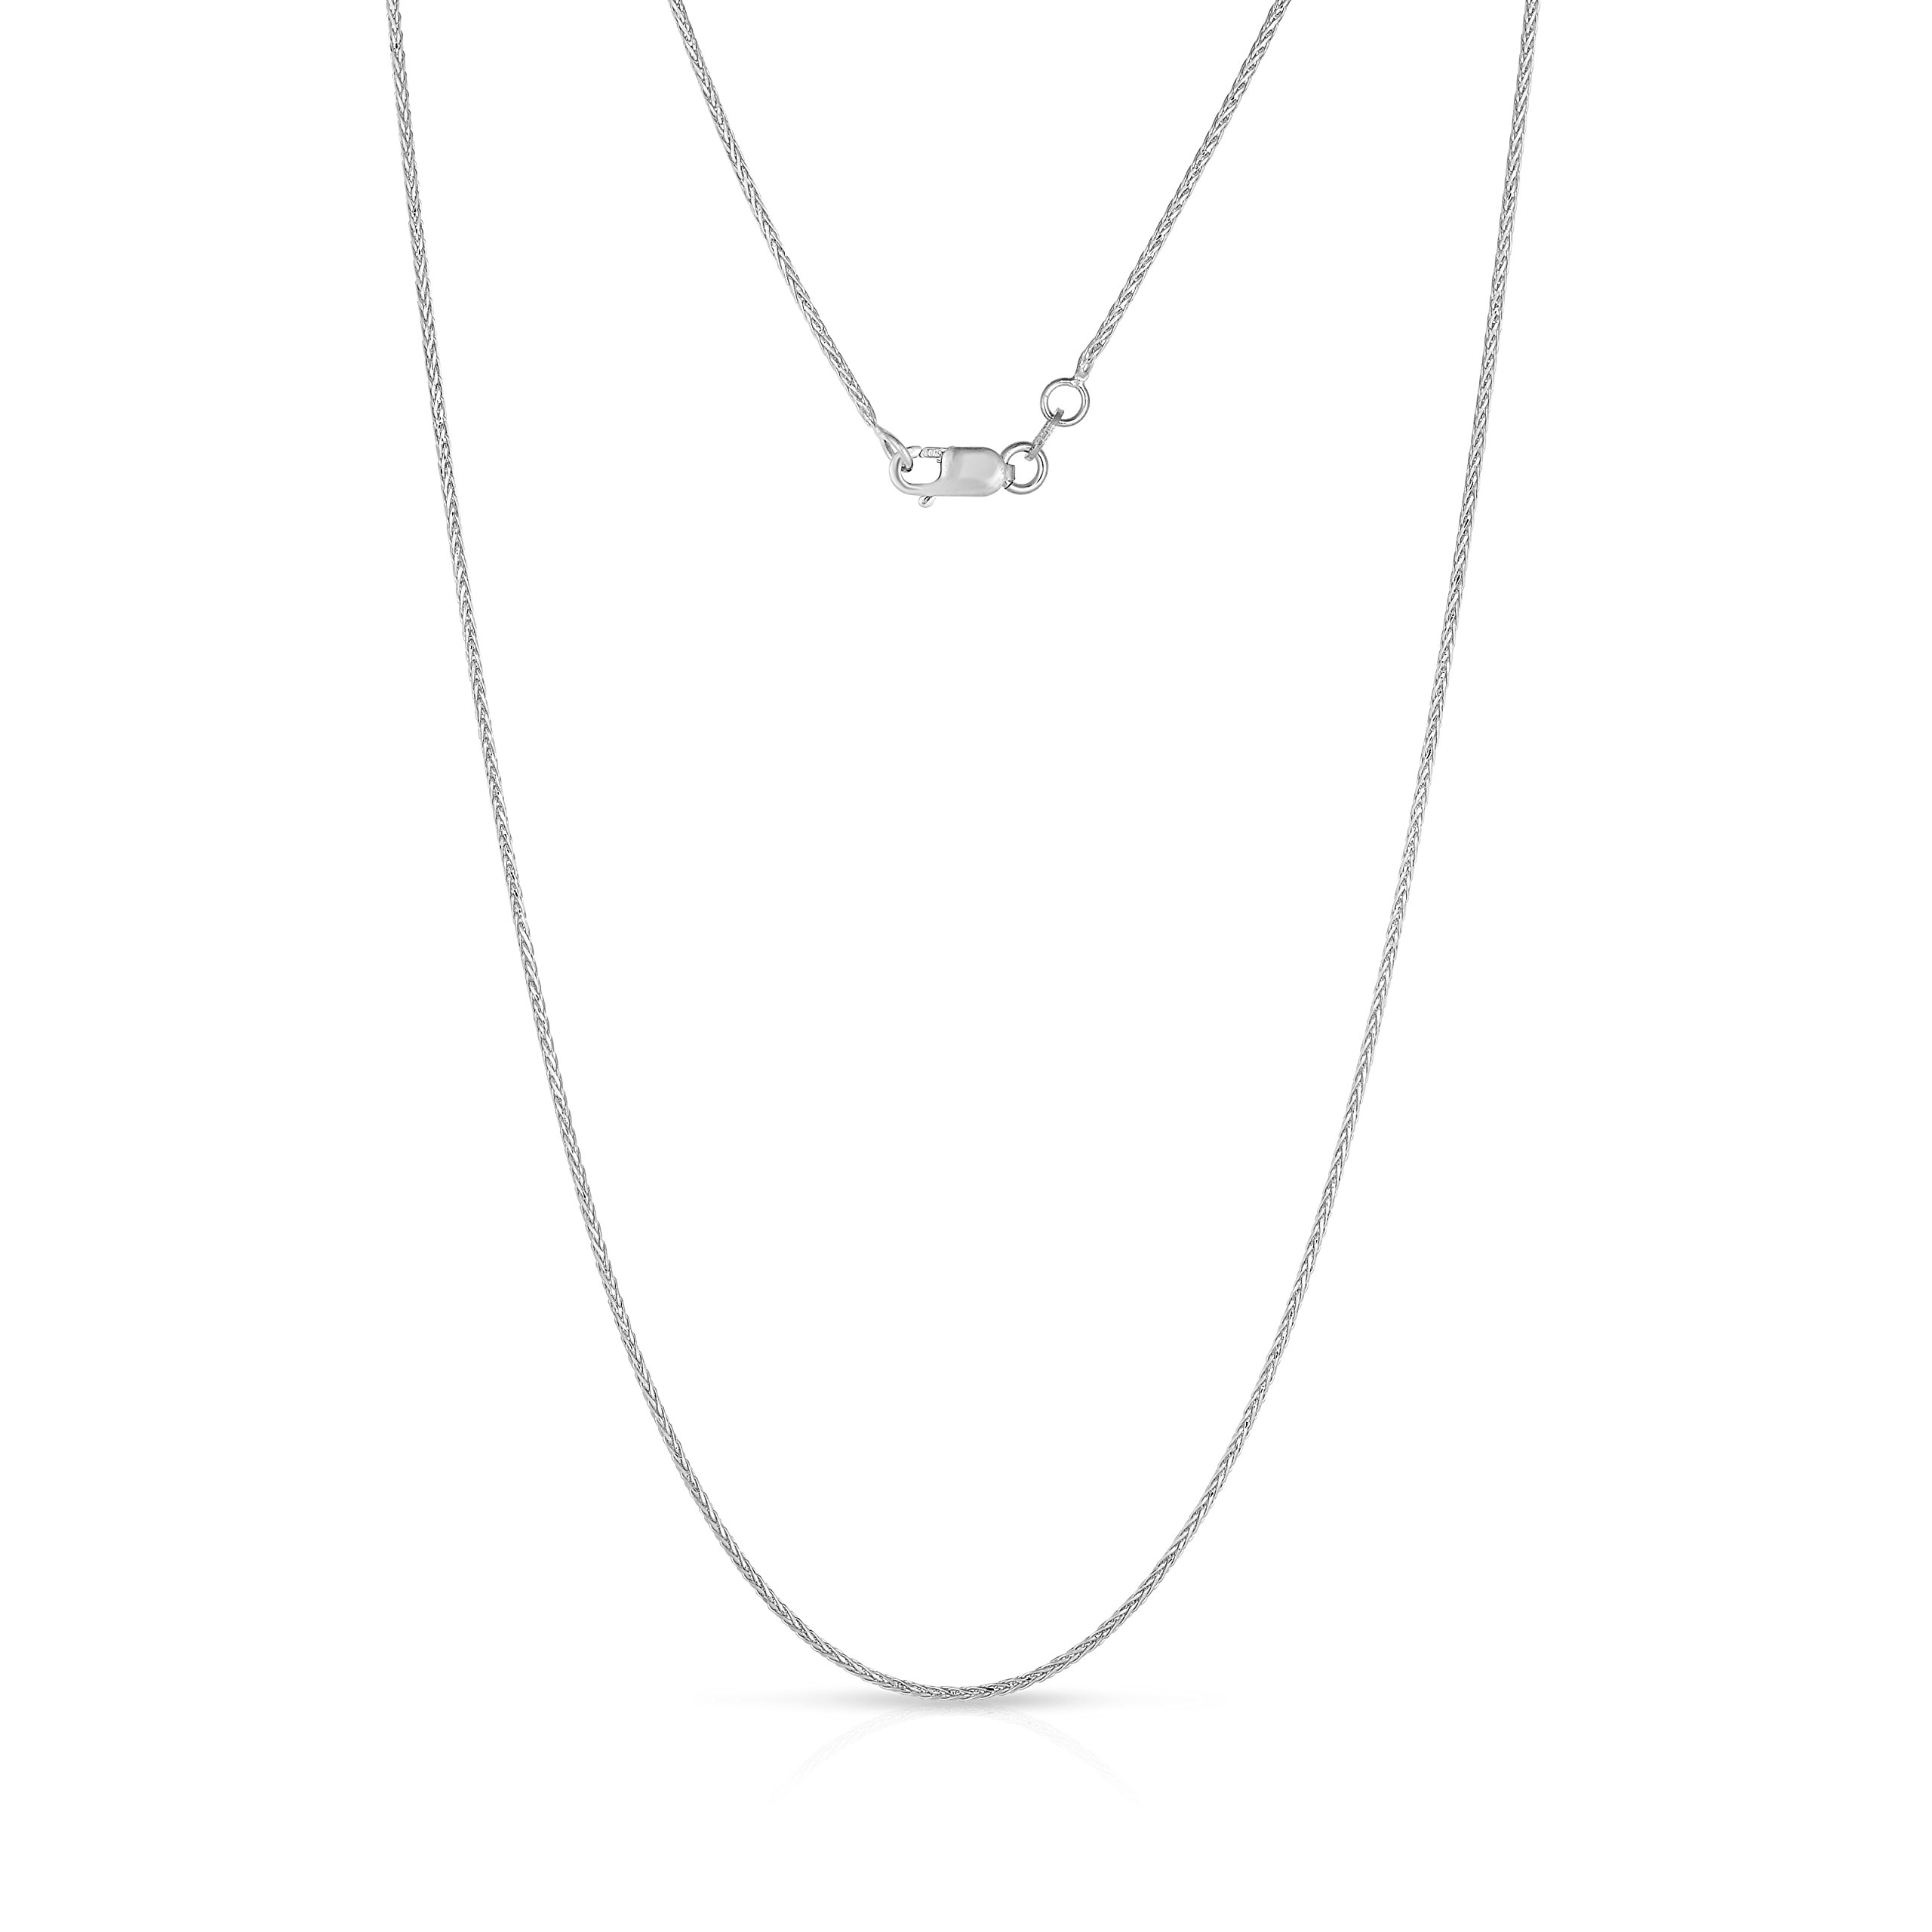 10K White Gold Wheat Chain Necklace, 22 Inch